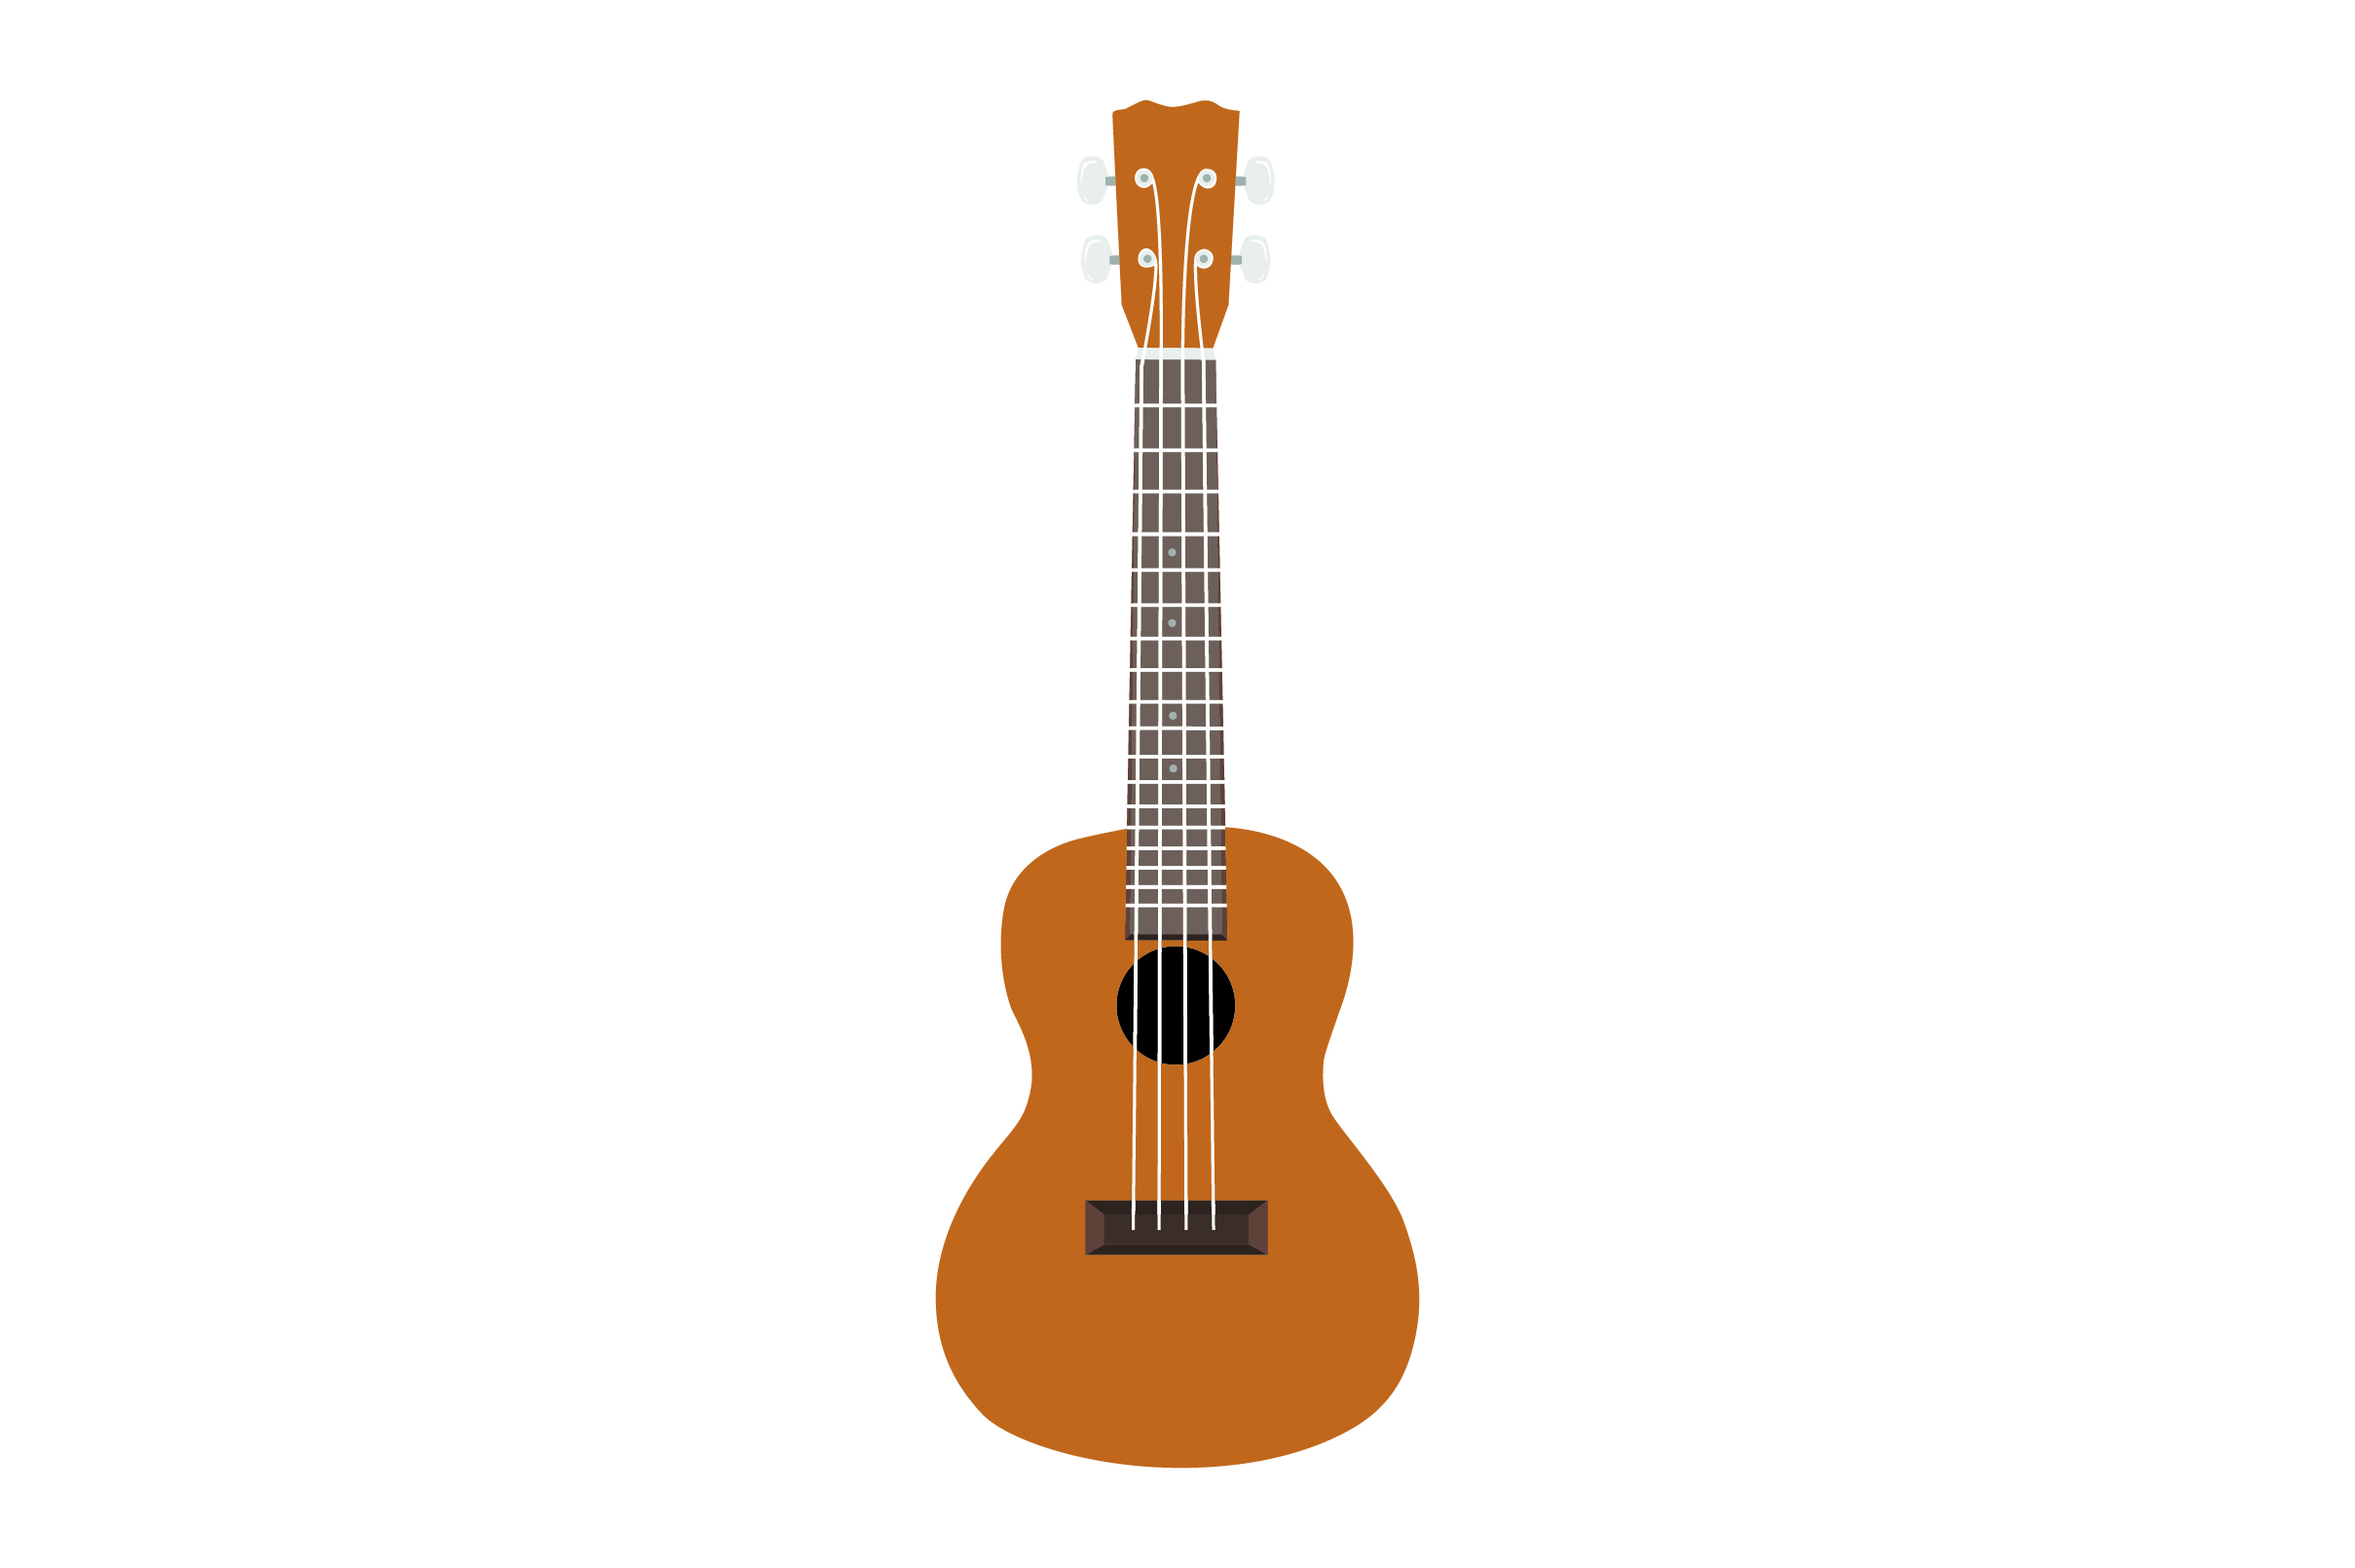 Download Free Ukulele Svg Cut File By Creative Fabrica Crafts Creative Fabrica for Cricut Explore, Silhouette and other cutting machines.